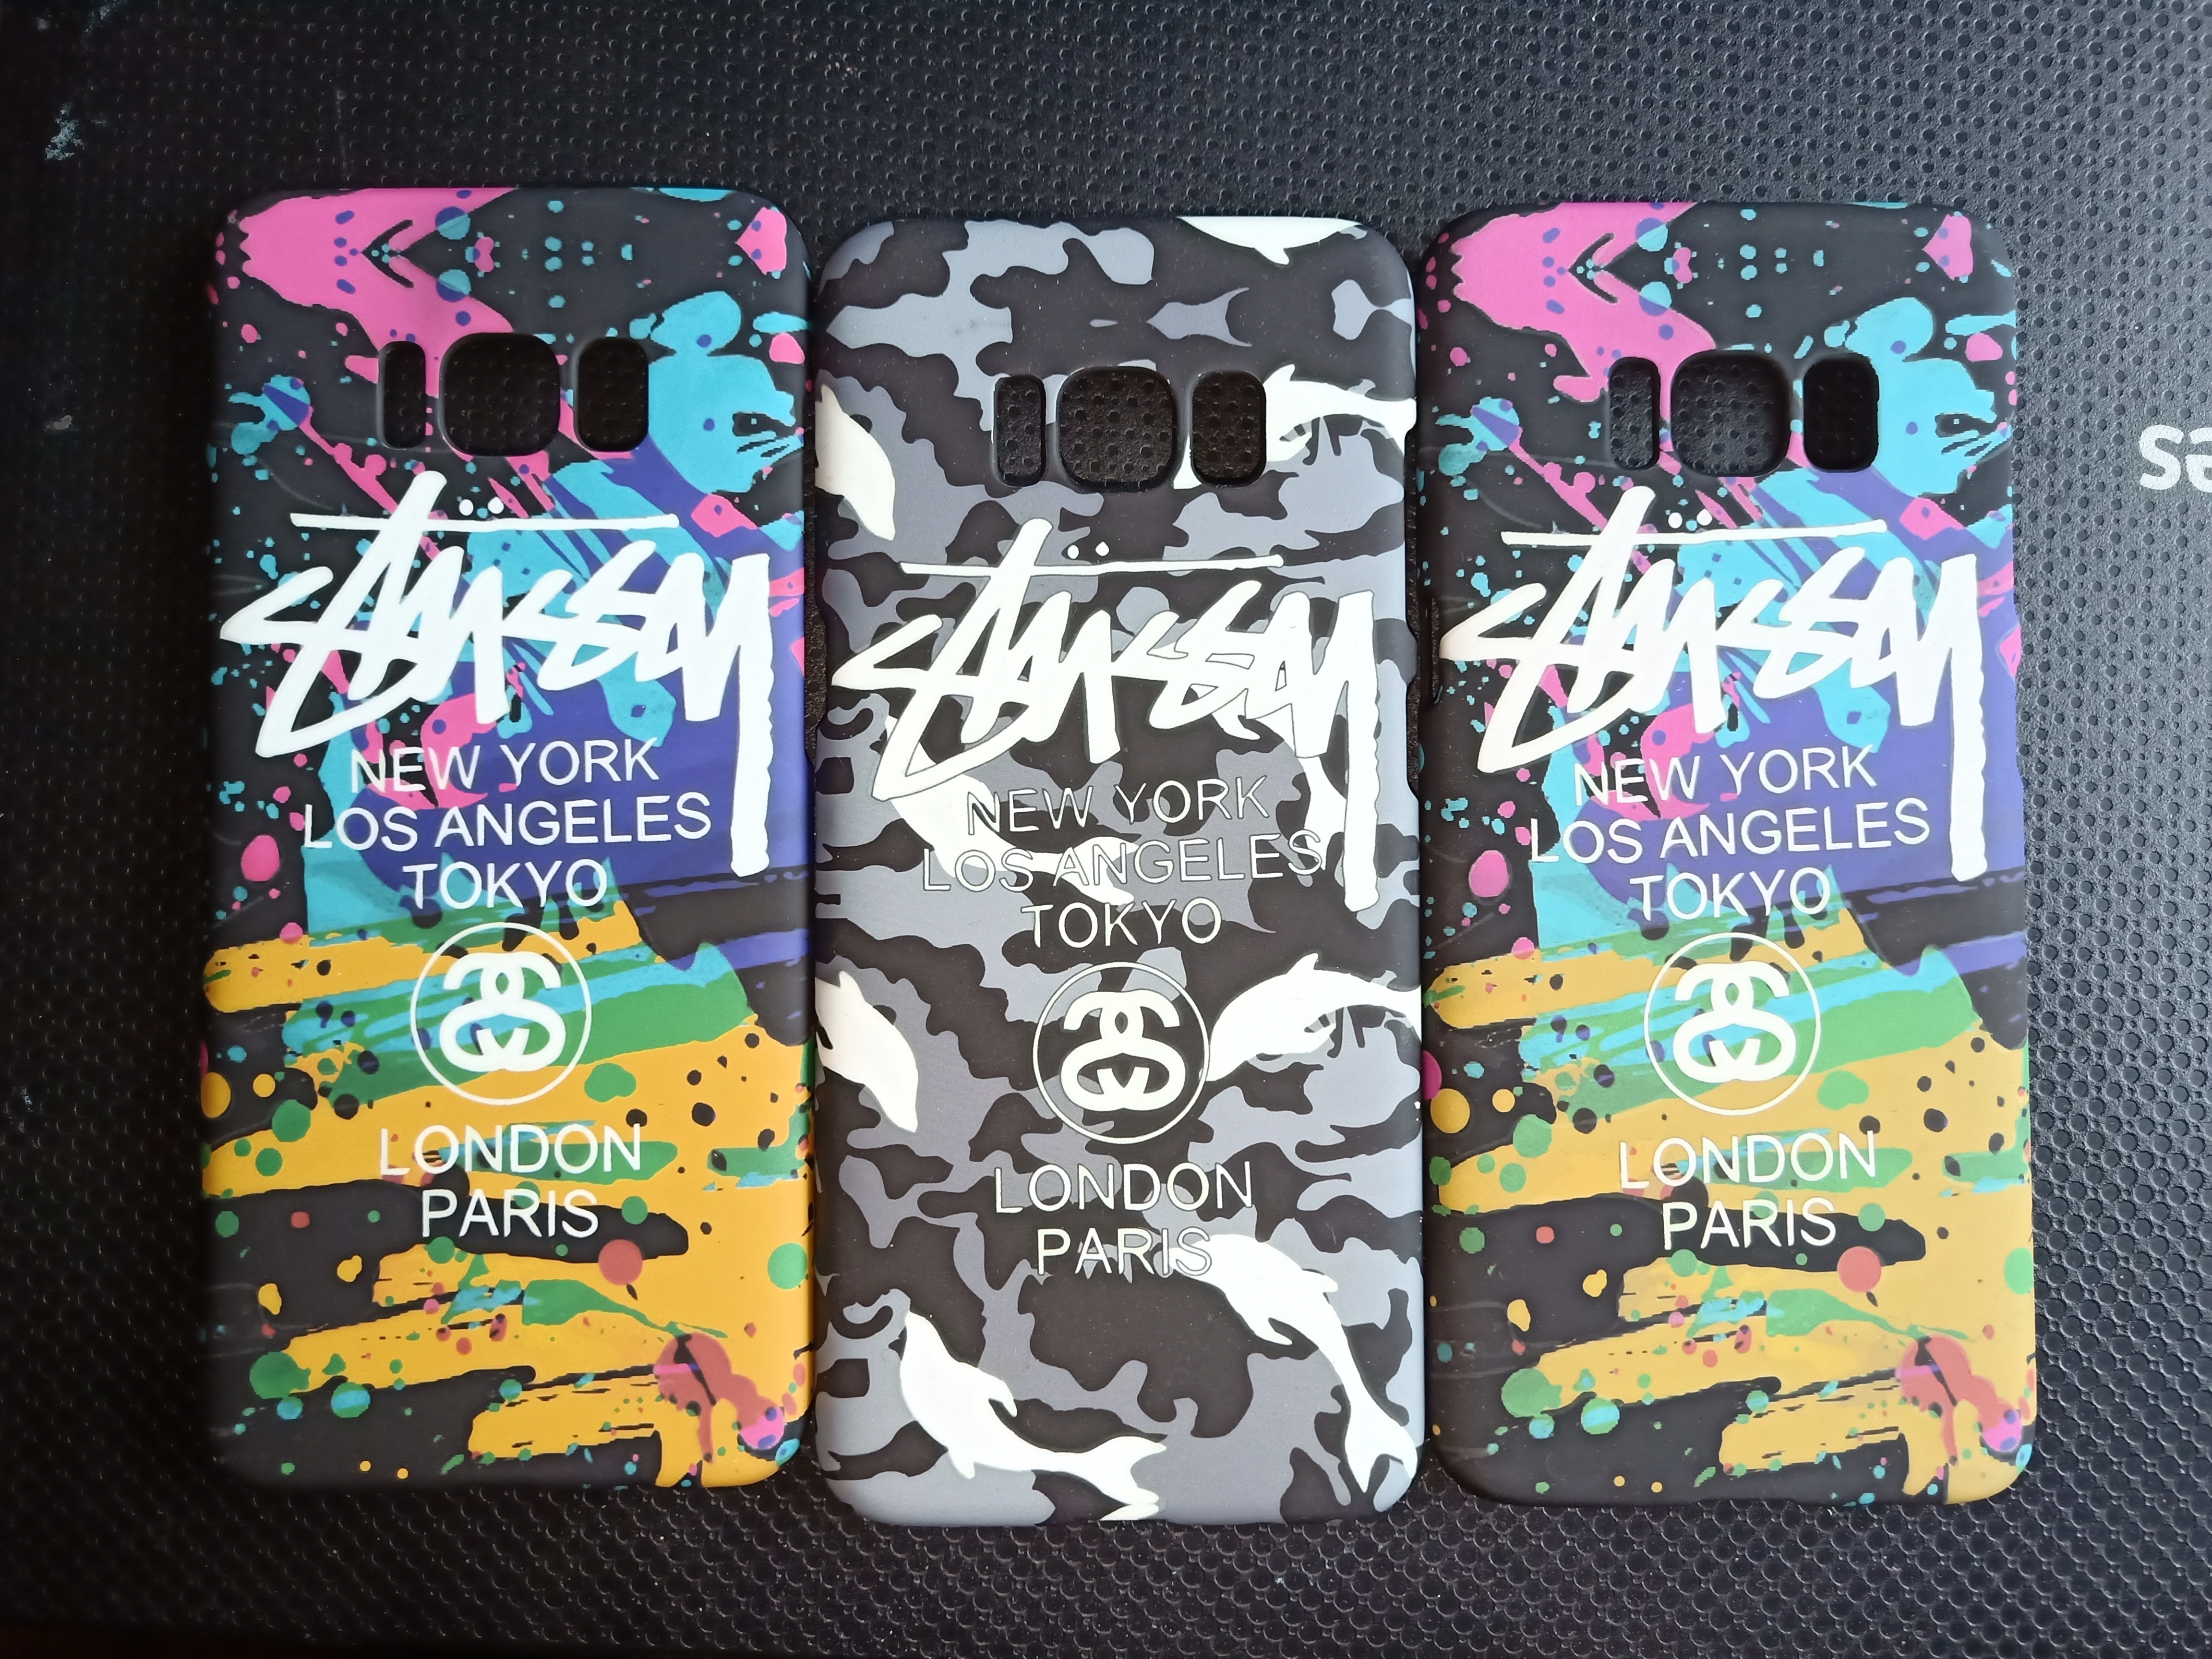 Stussy Glow In The Dark Case For S8 Mobile Phones Tablets Goospery Samsung Plus Hybrid Dream Bumper Rose Gold Tablet Accessories Cases Sleeves On Carousell